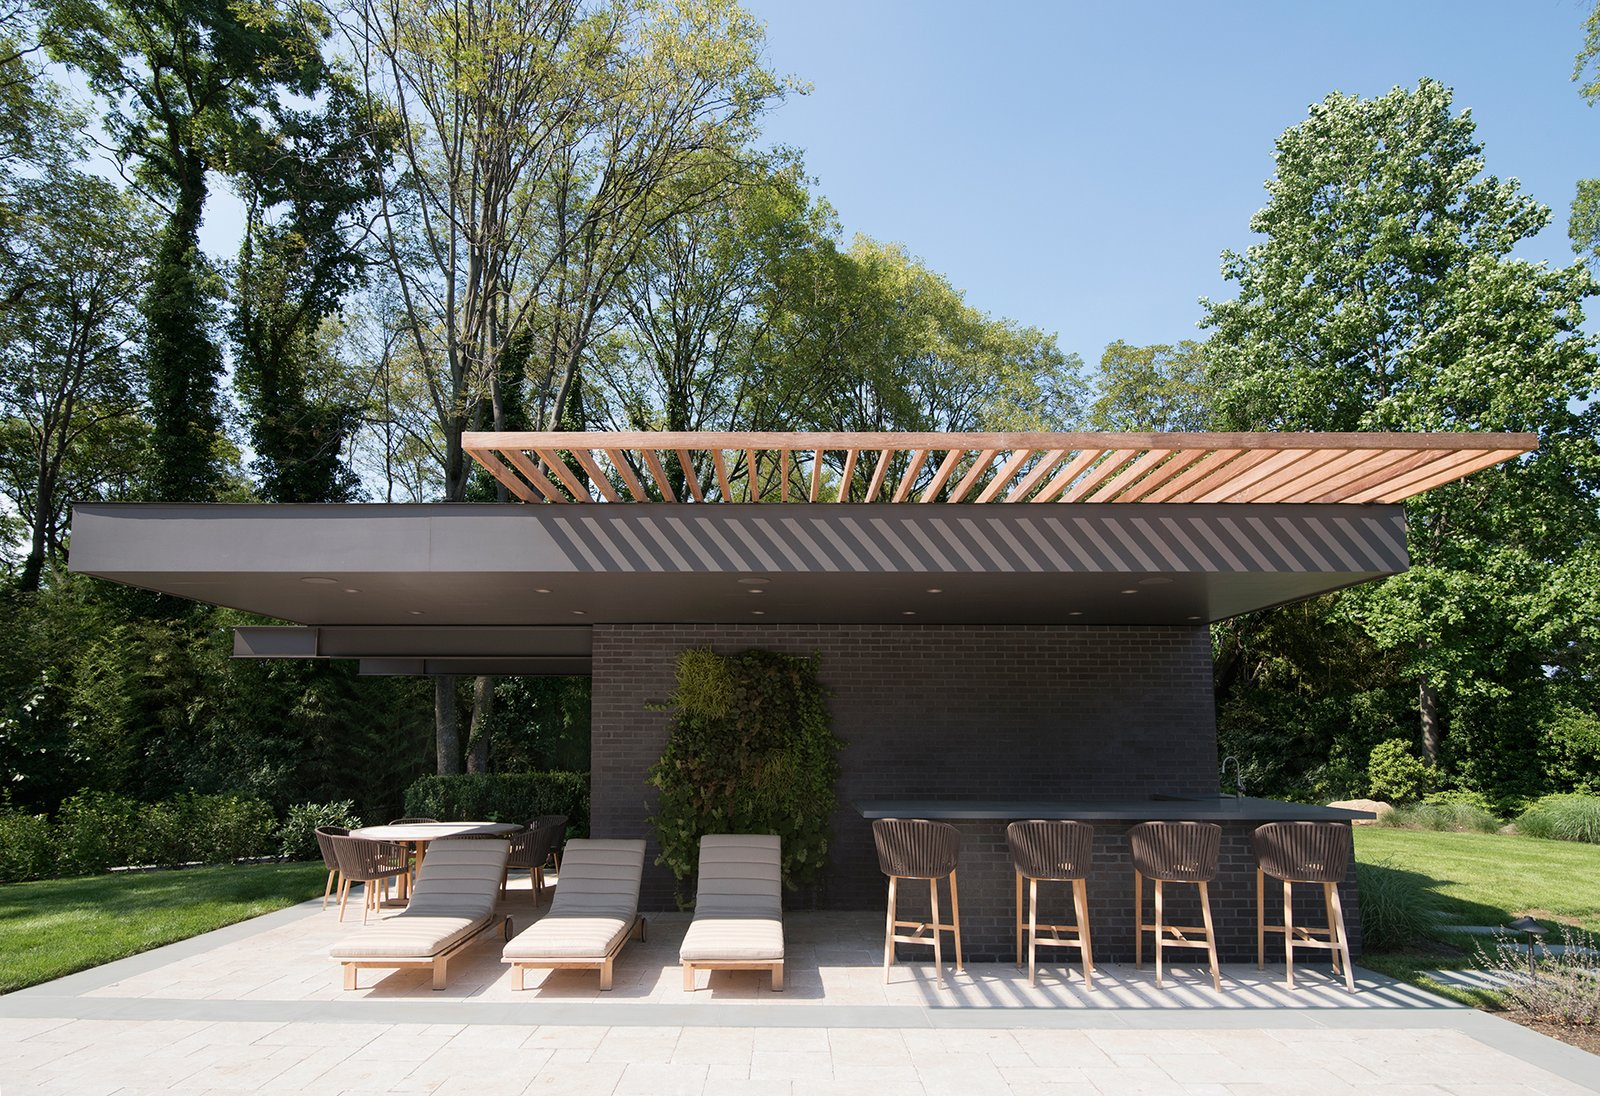 The Free Float Pool House's cantilevered steel creates a column-free shaded area. Free Float Pool Cabana by The UP Studio